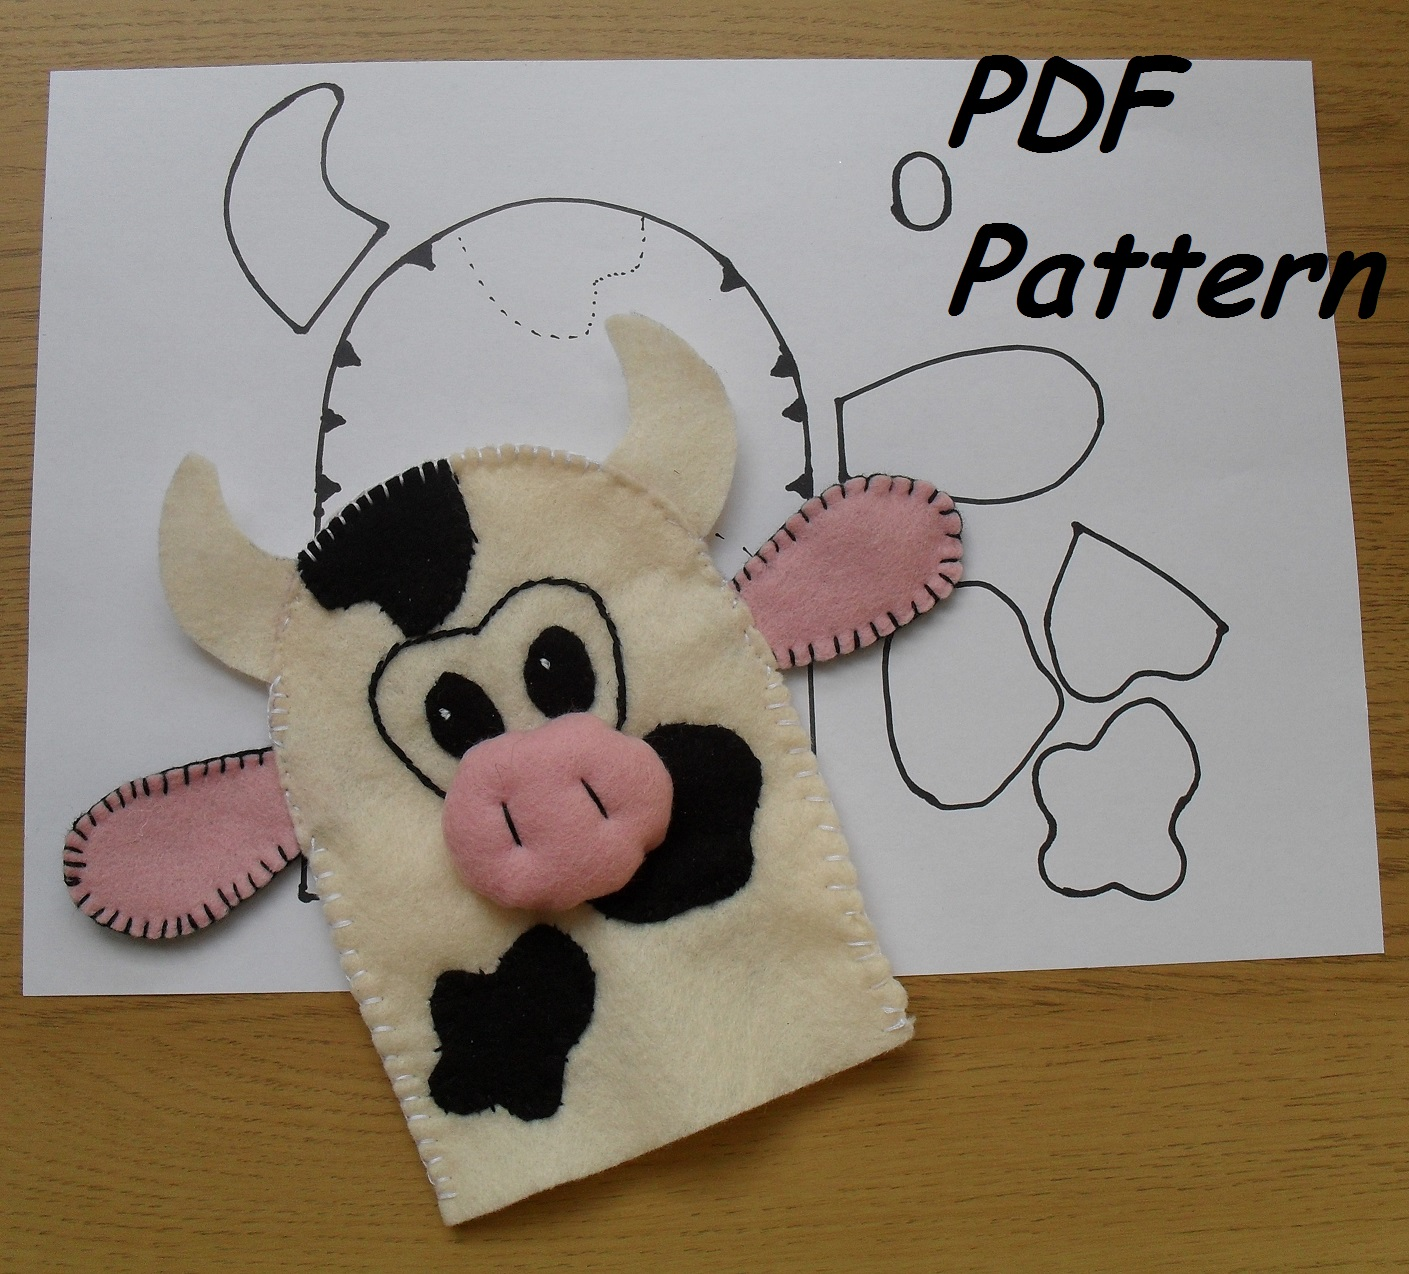 Custom golf headcovers and puppets cow hand puppet sewing pattern the cow is the second animal from my project old mcdonald farm sewing pattern so i am half way trough jeuxipadfo Images